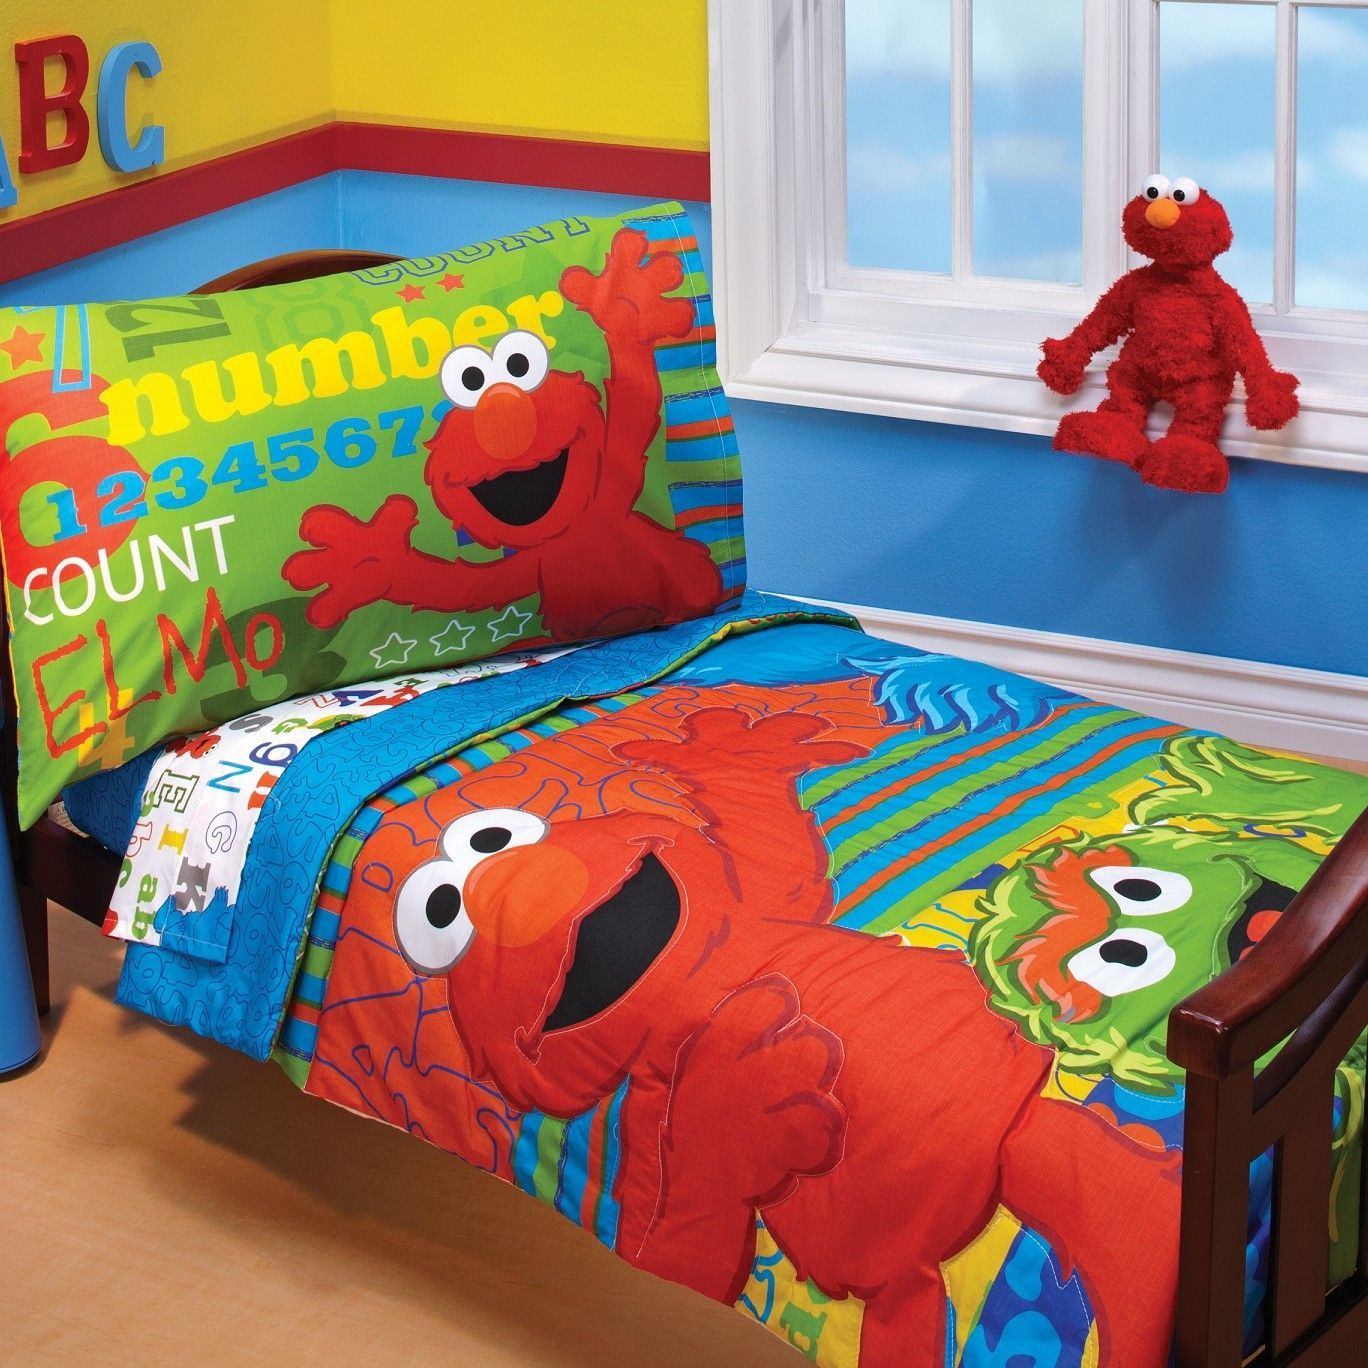 Ruby s rainbow room inspiration for kids bedroom decor at huggies - Abc 123 4 Piece Toddler Bedding Set